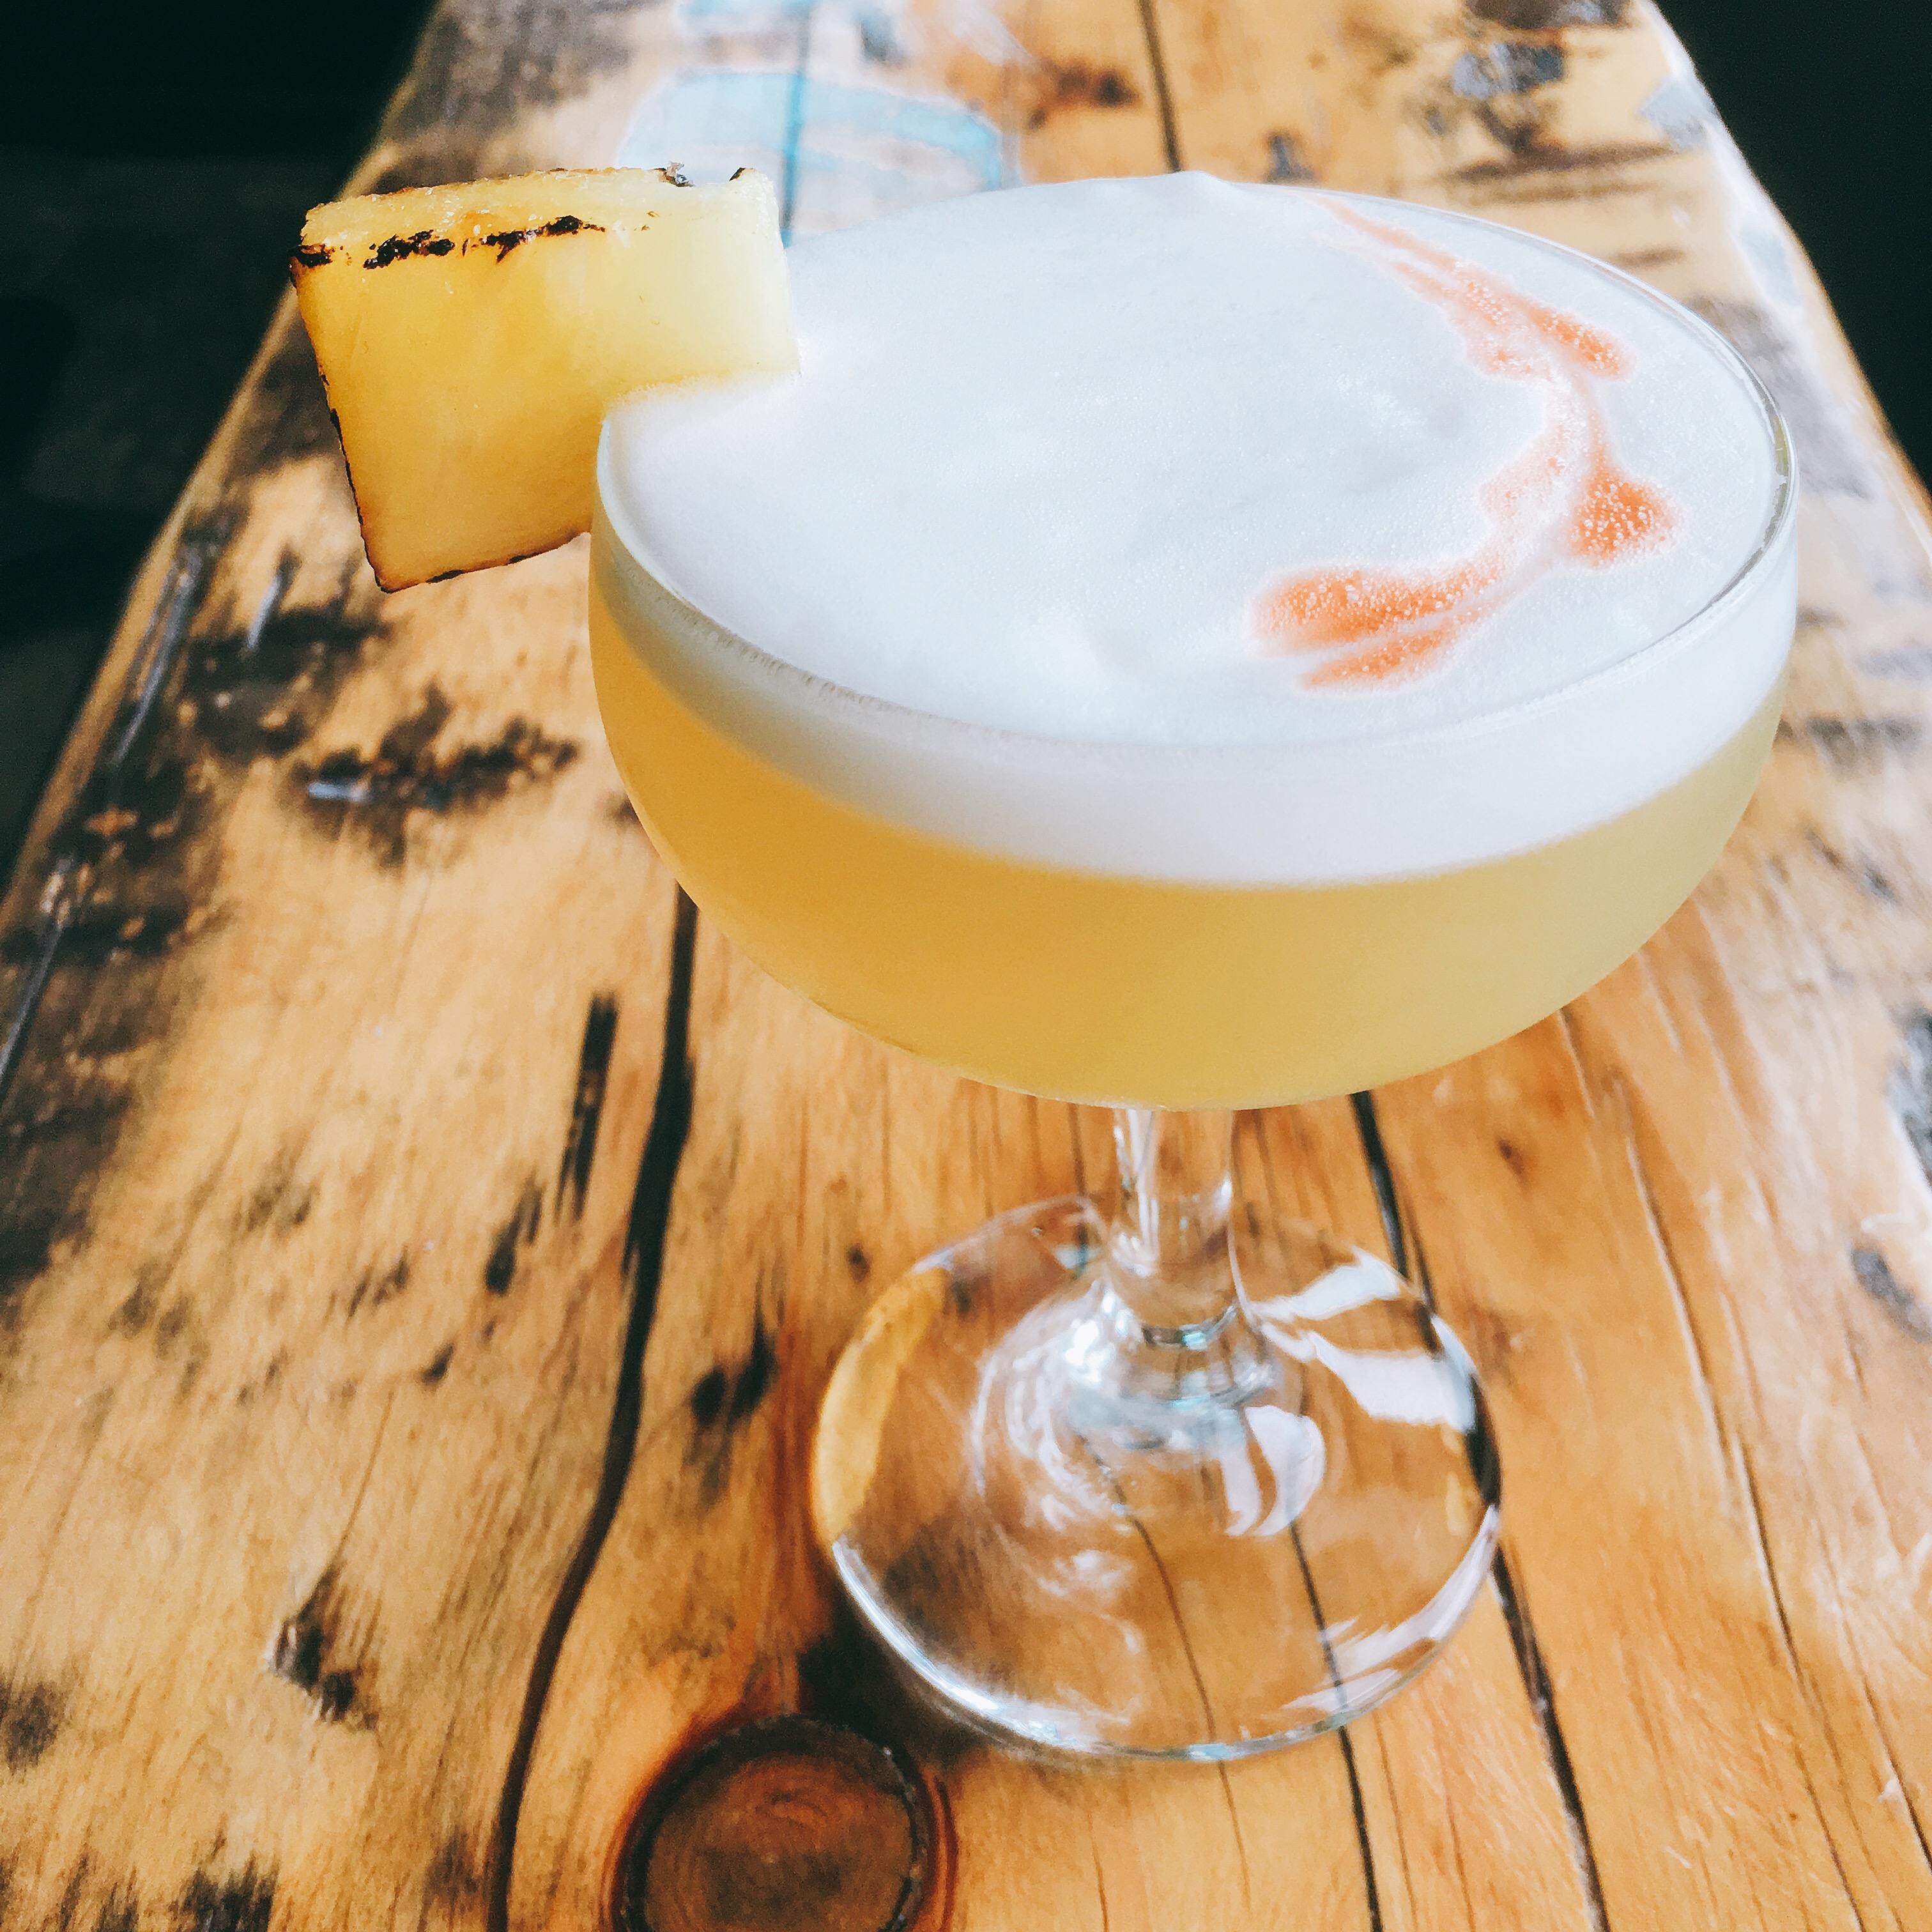 coup with a frothy yellow cocktail garnished with pineapple